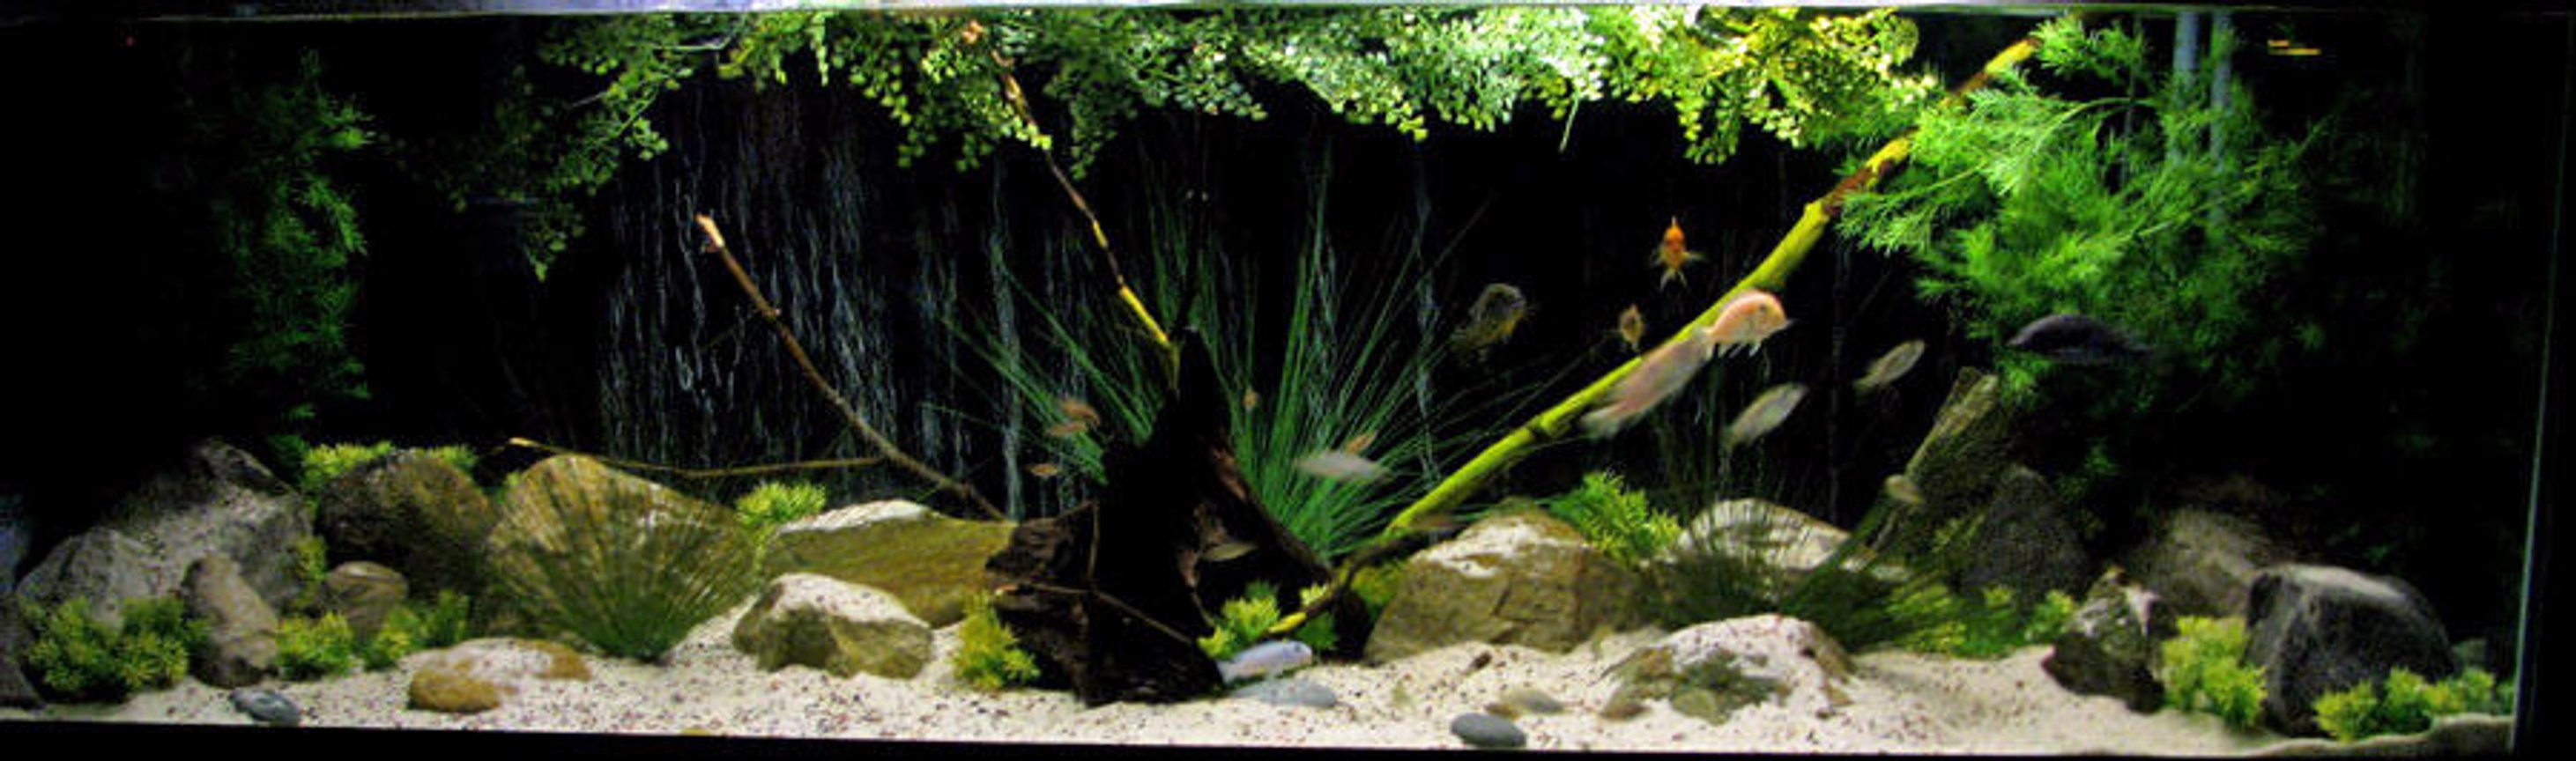 135 gallons freshwater fish tank (mostly fish and non-living decorations) - 135 gallon malawi